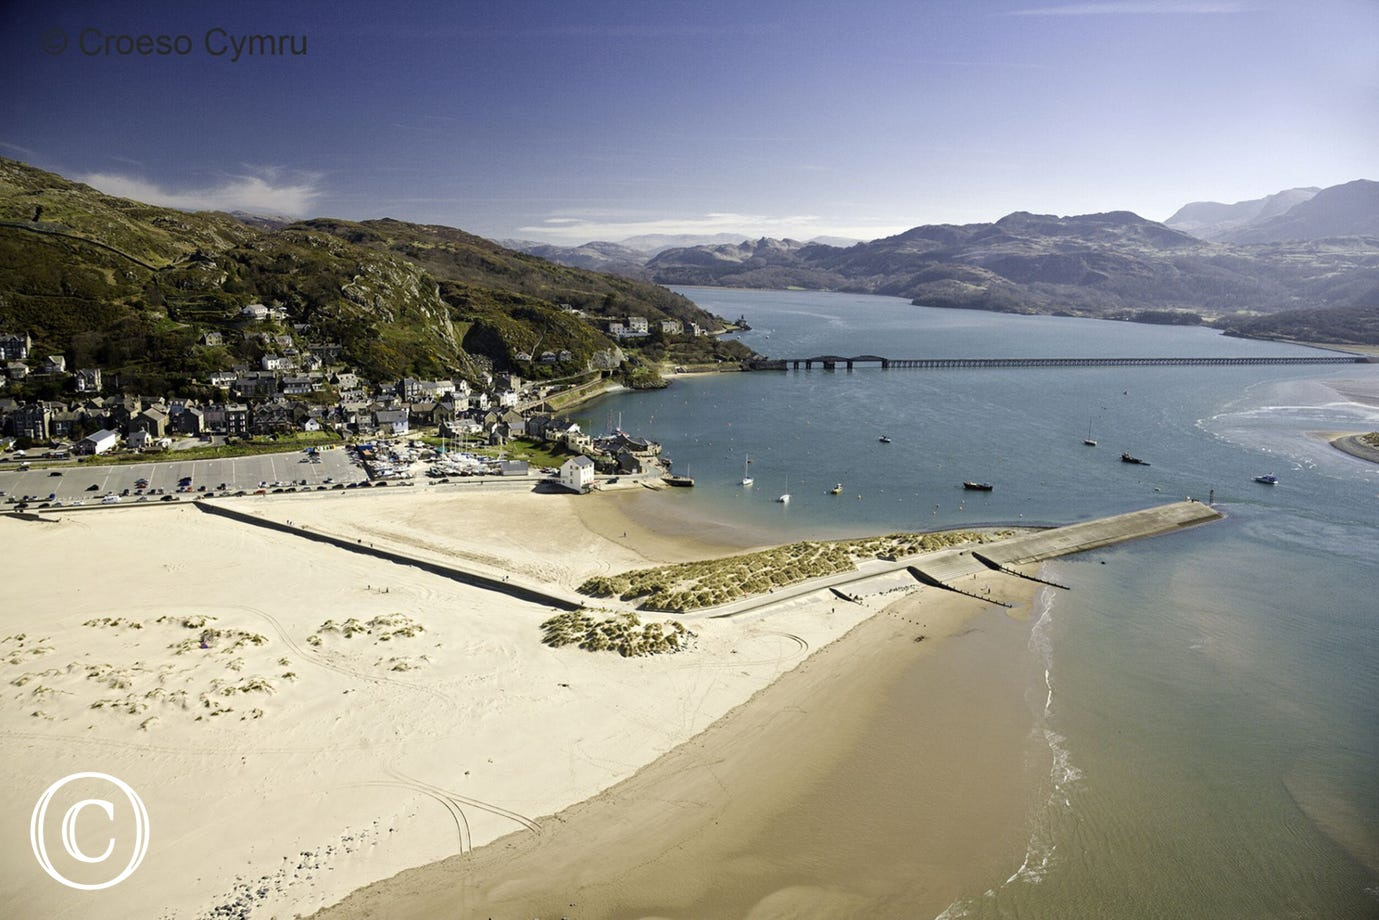 ...or on the Blue Flag Beach in Barmouth on the North Wales coast